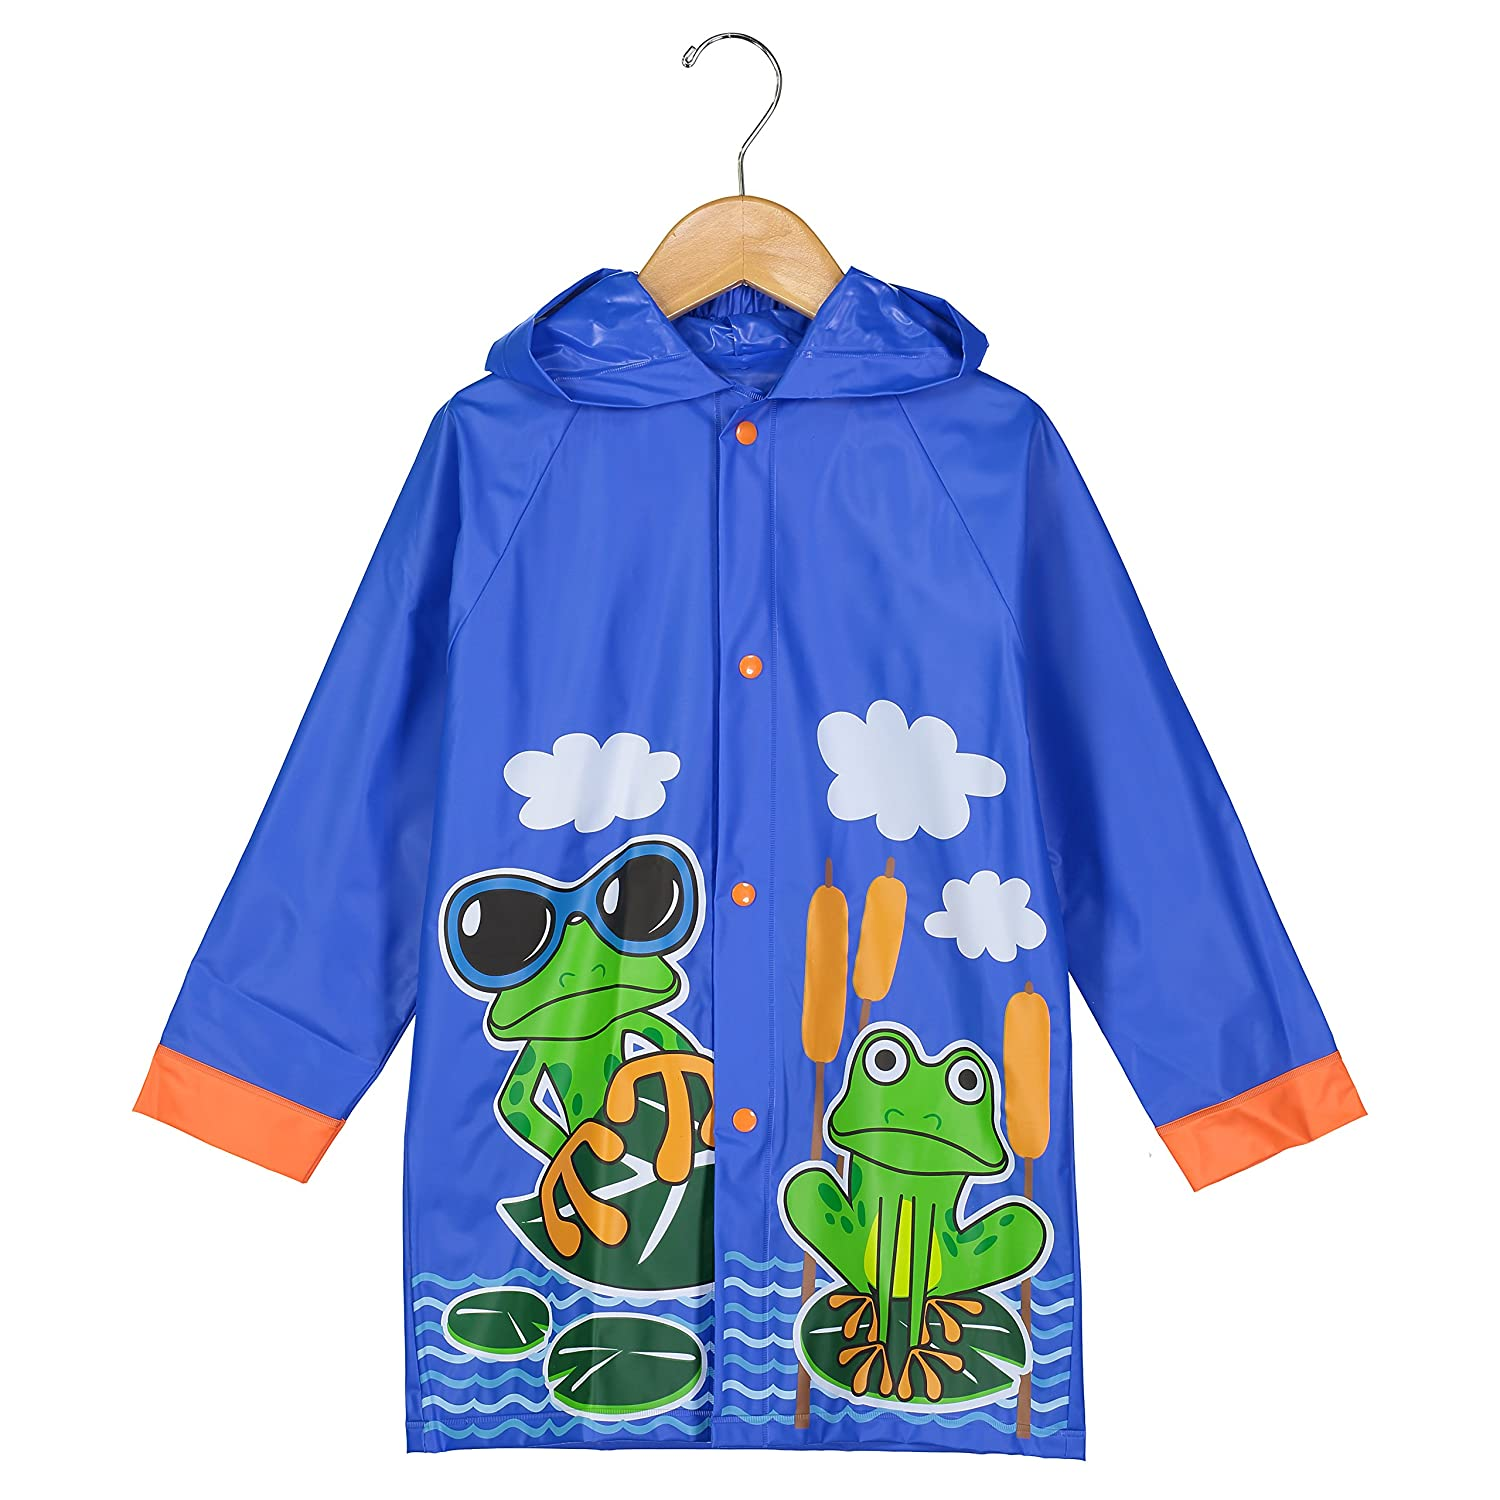 Puddle Play Little Boys and Girls Rain Slicker Outwear Hooded Fun Colors and Designs Toddler and Little Kid